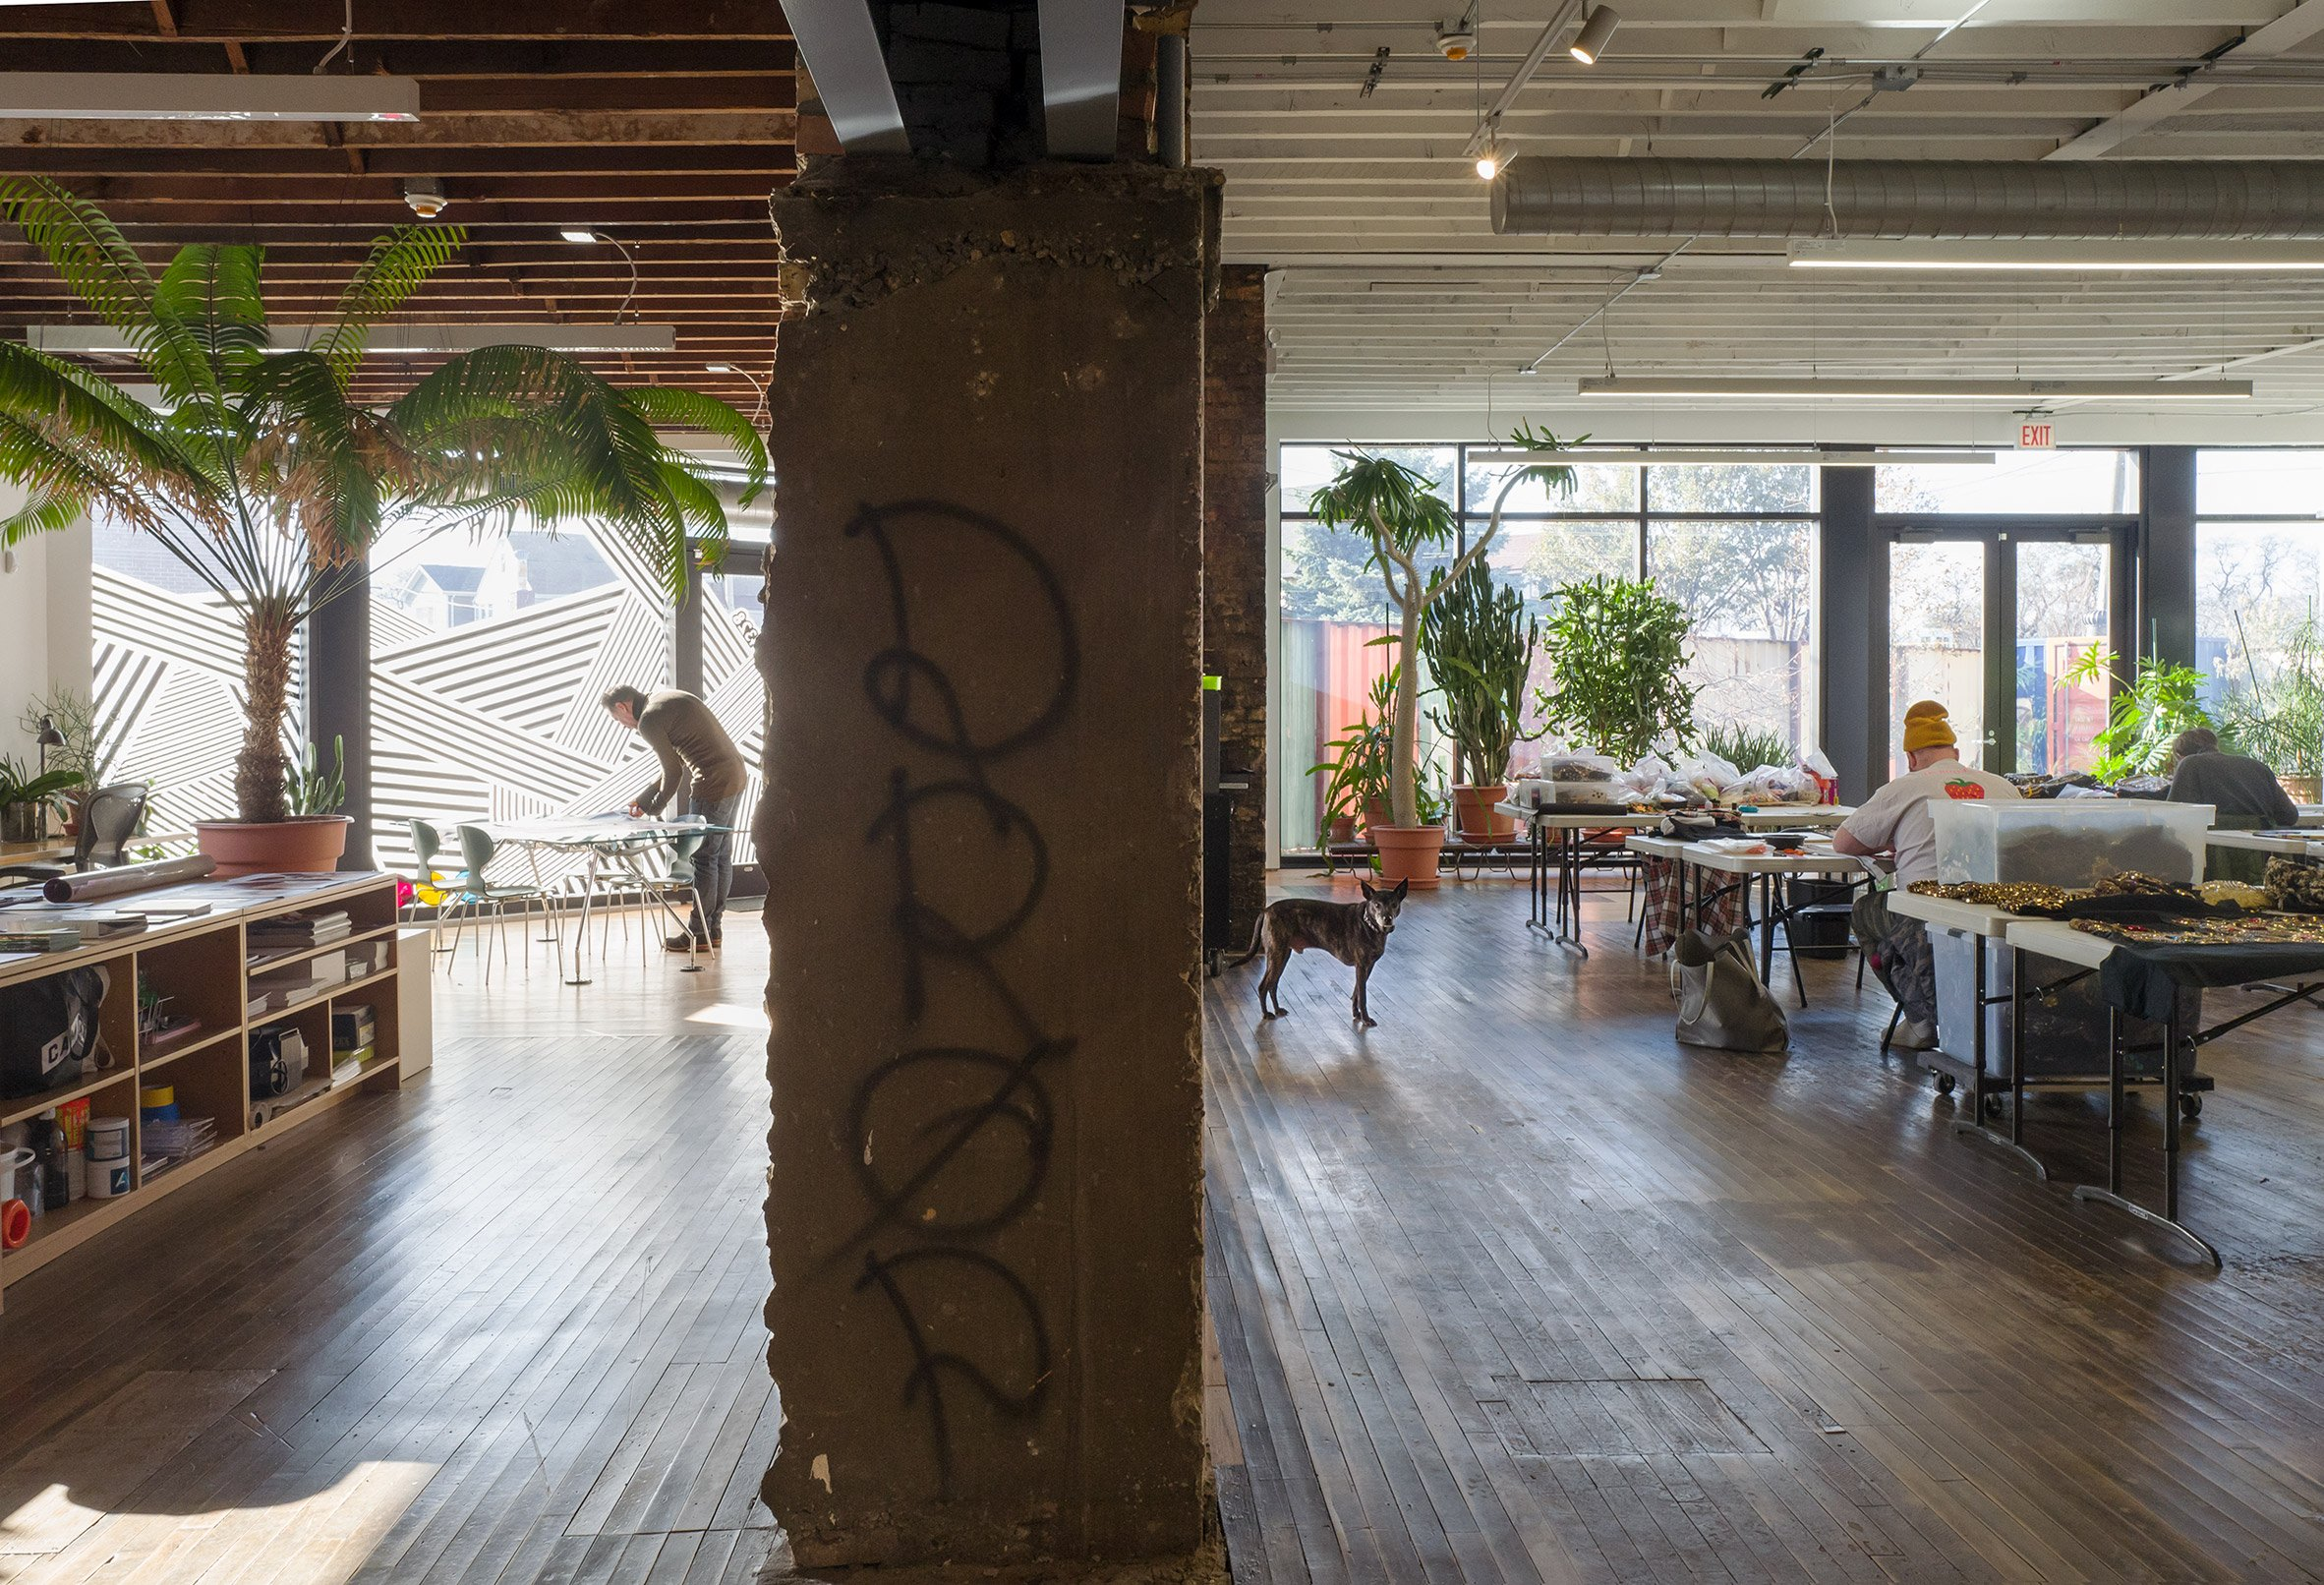 A studio with old concrete columns inside Facilty, Chicago, by Carlo Parente